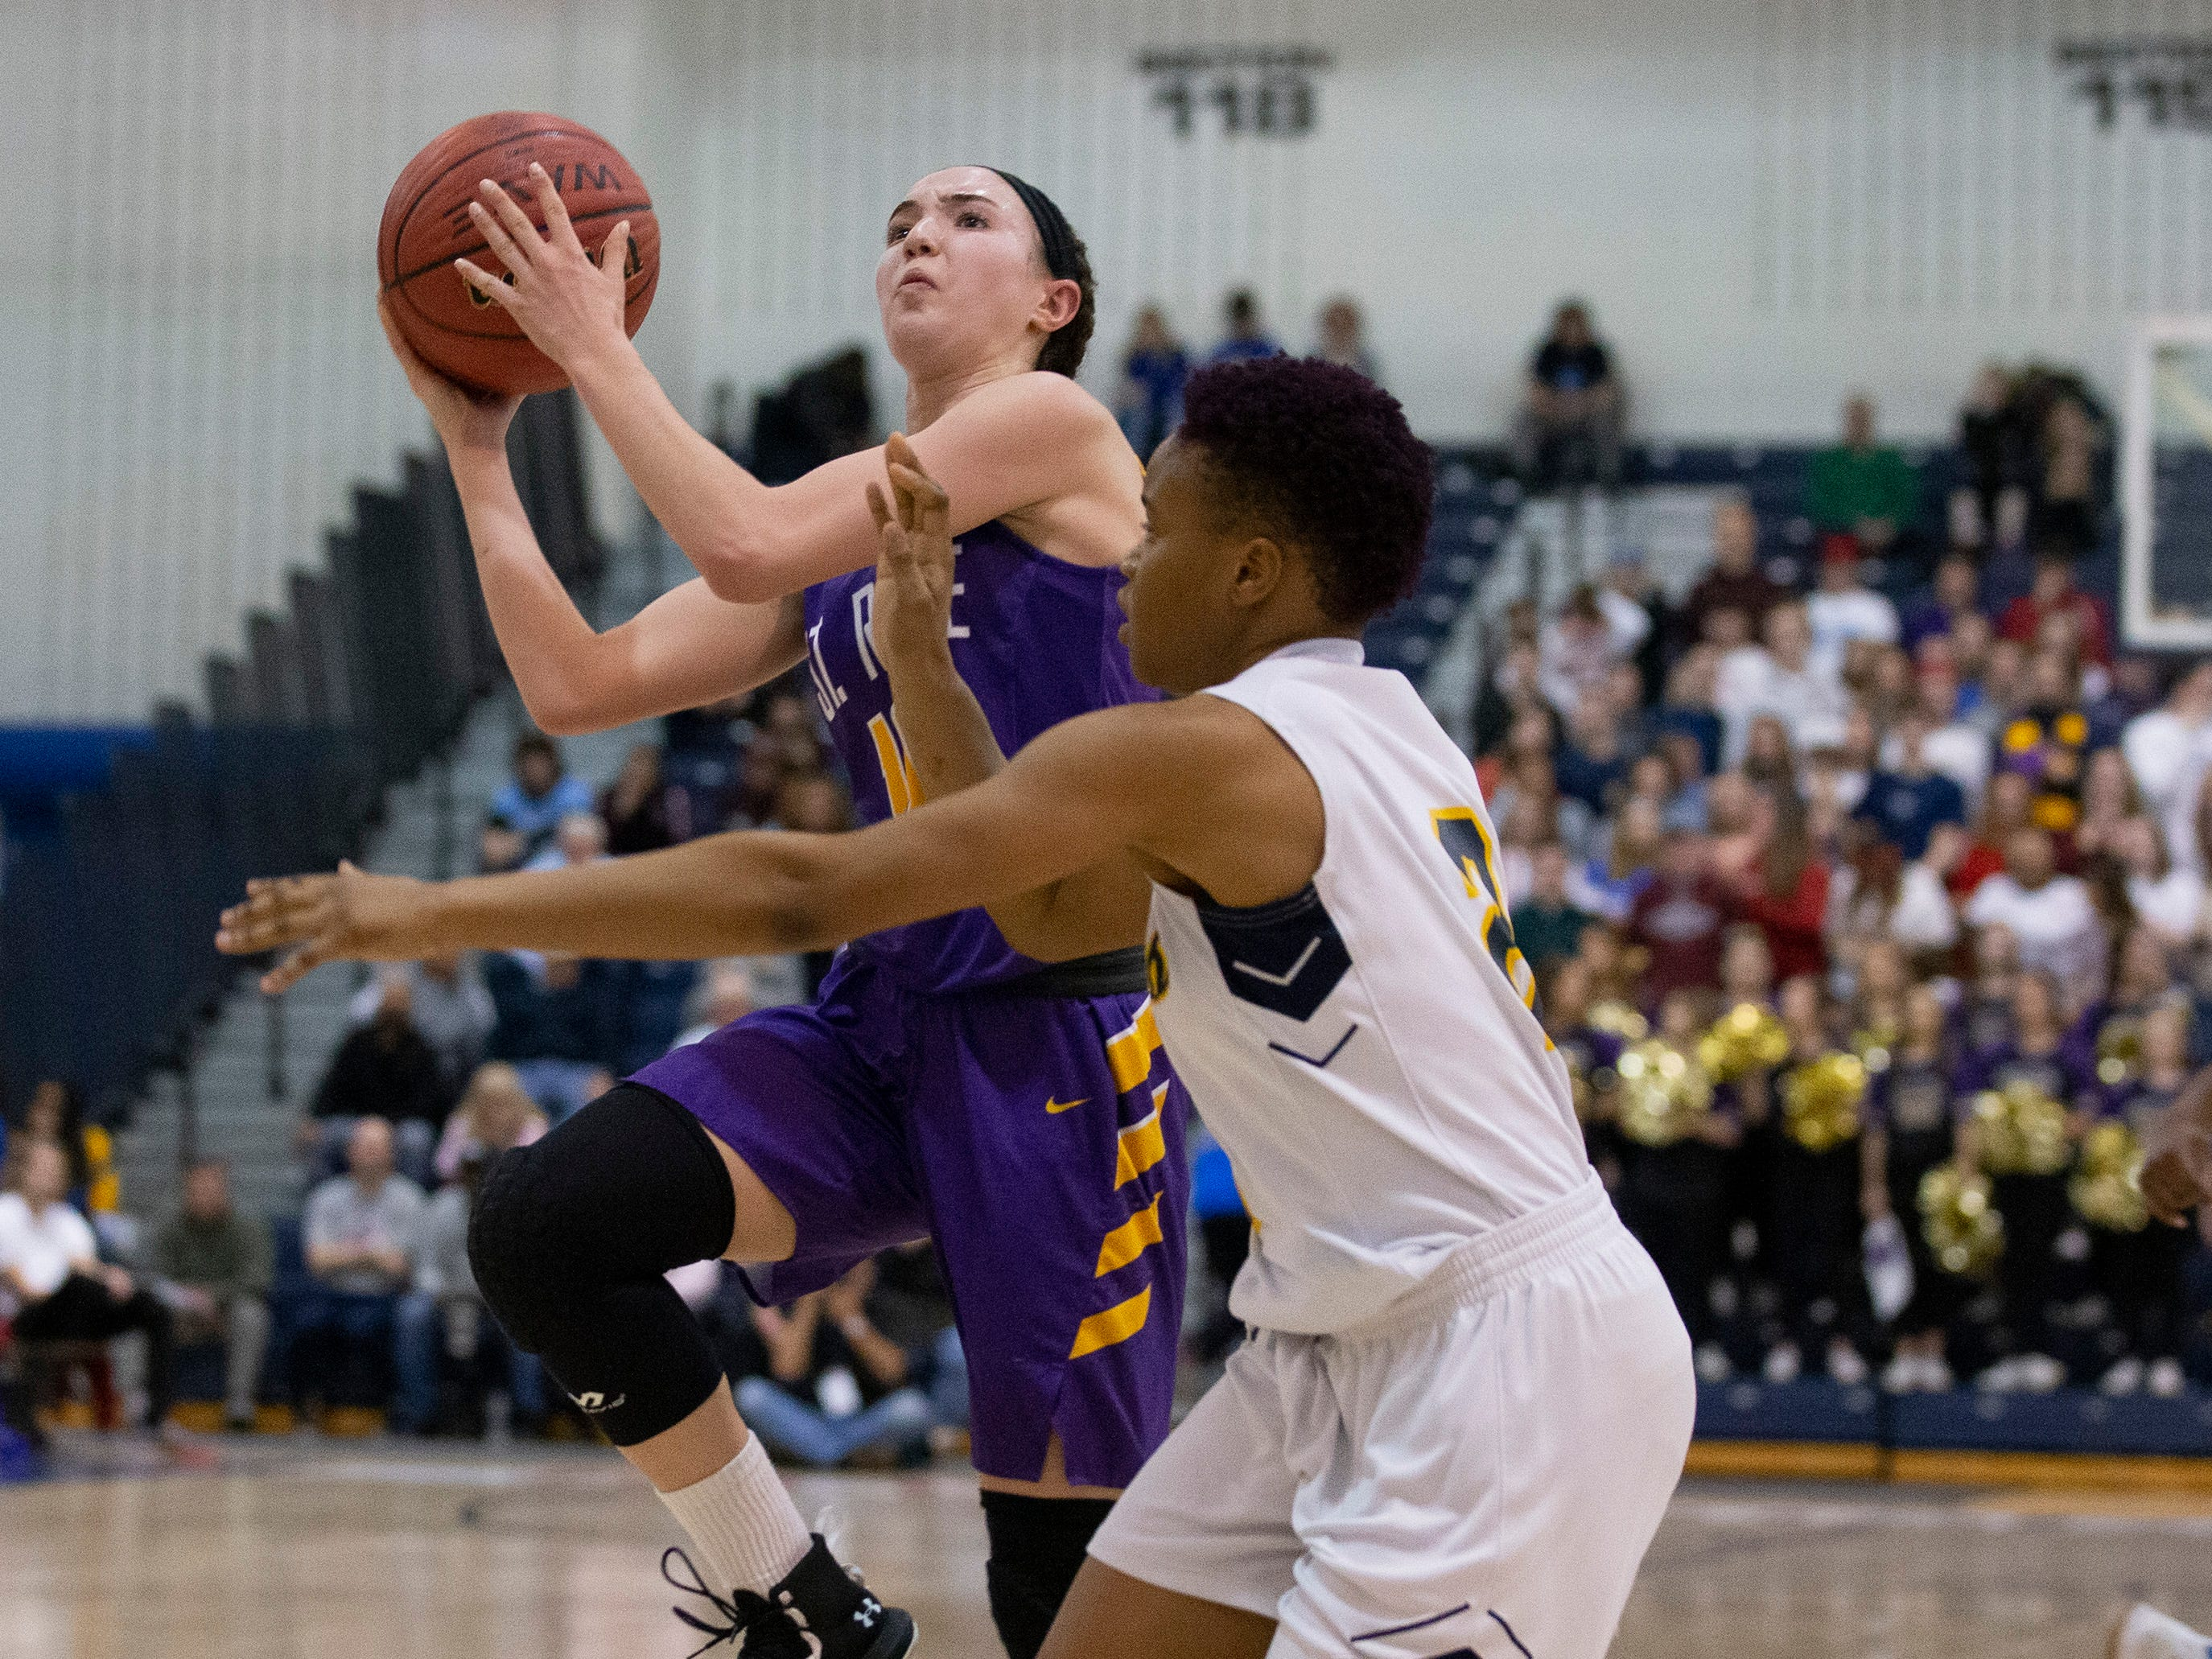 St Rose Girls Basketball vs Franklin High School in NJSIAA Tournament of Champions Semifinal in Toms River on March 14, 2019.